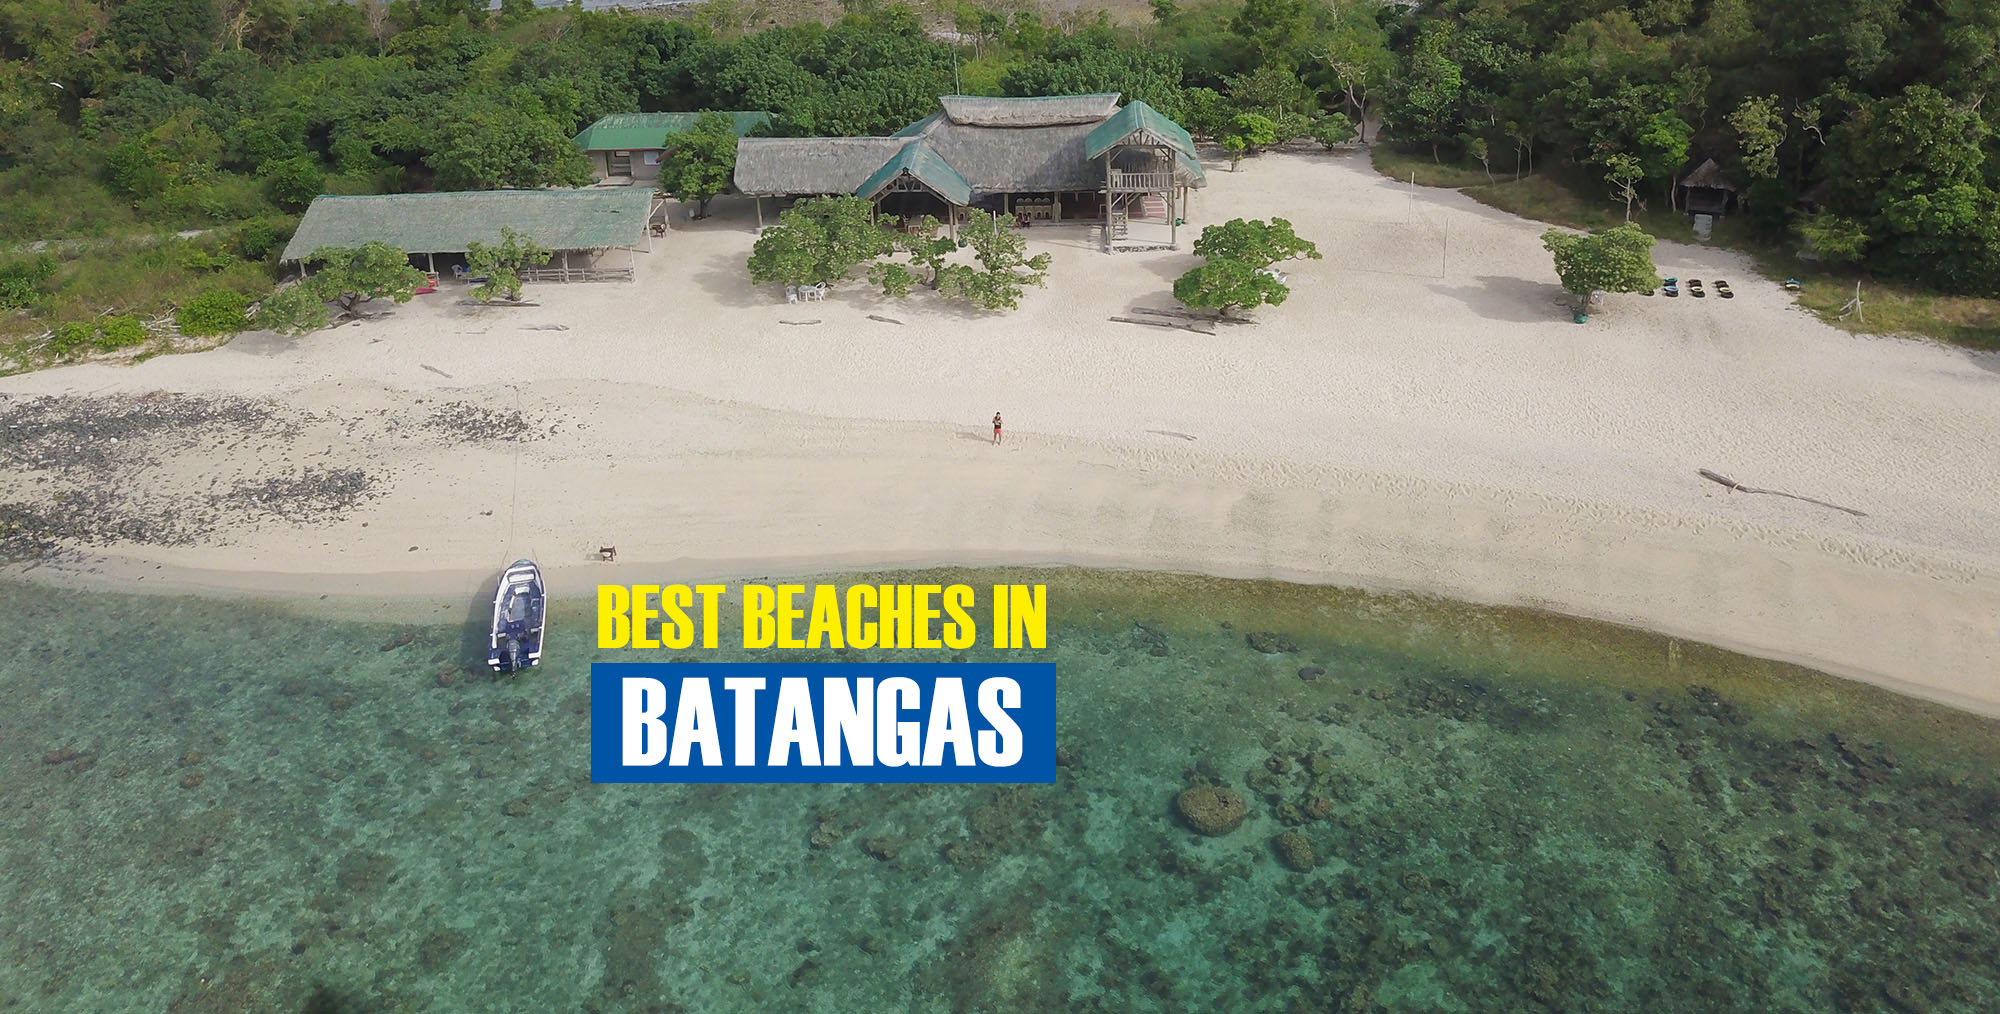 The Best Beaches in Batangas